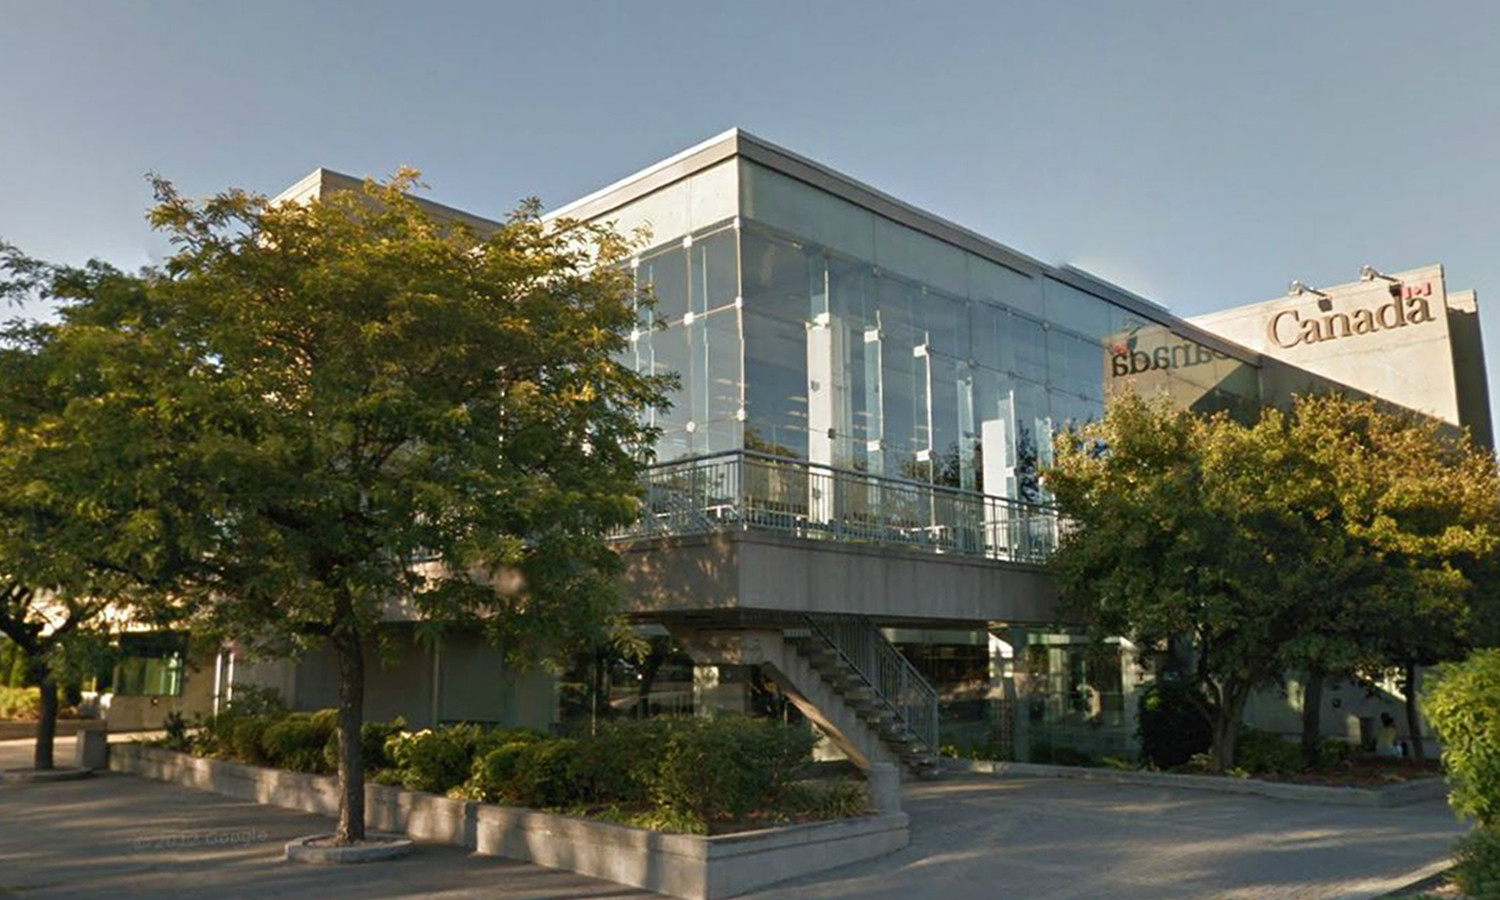 South Elevation Showing Glass Curtain Wall and Irregular Massing (Courtesy Google Maps)